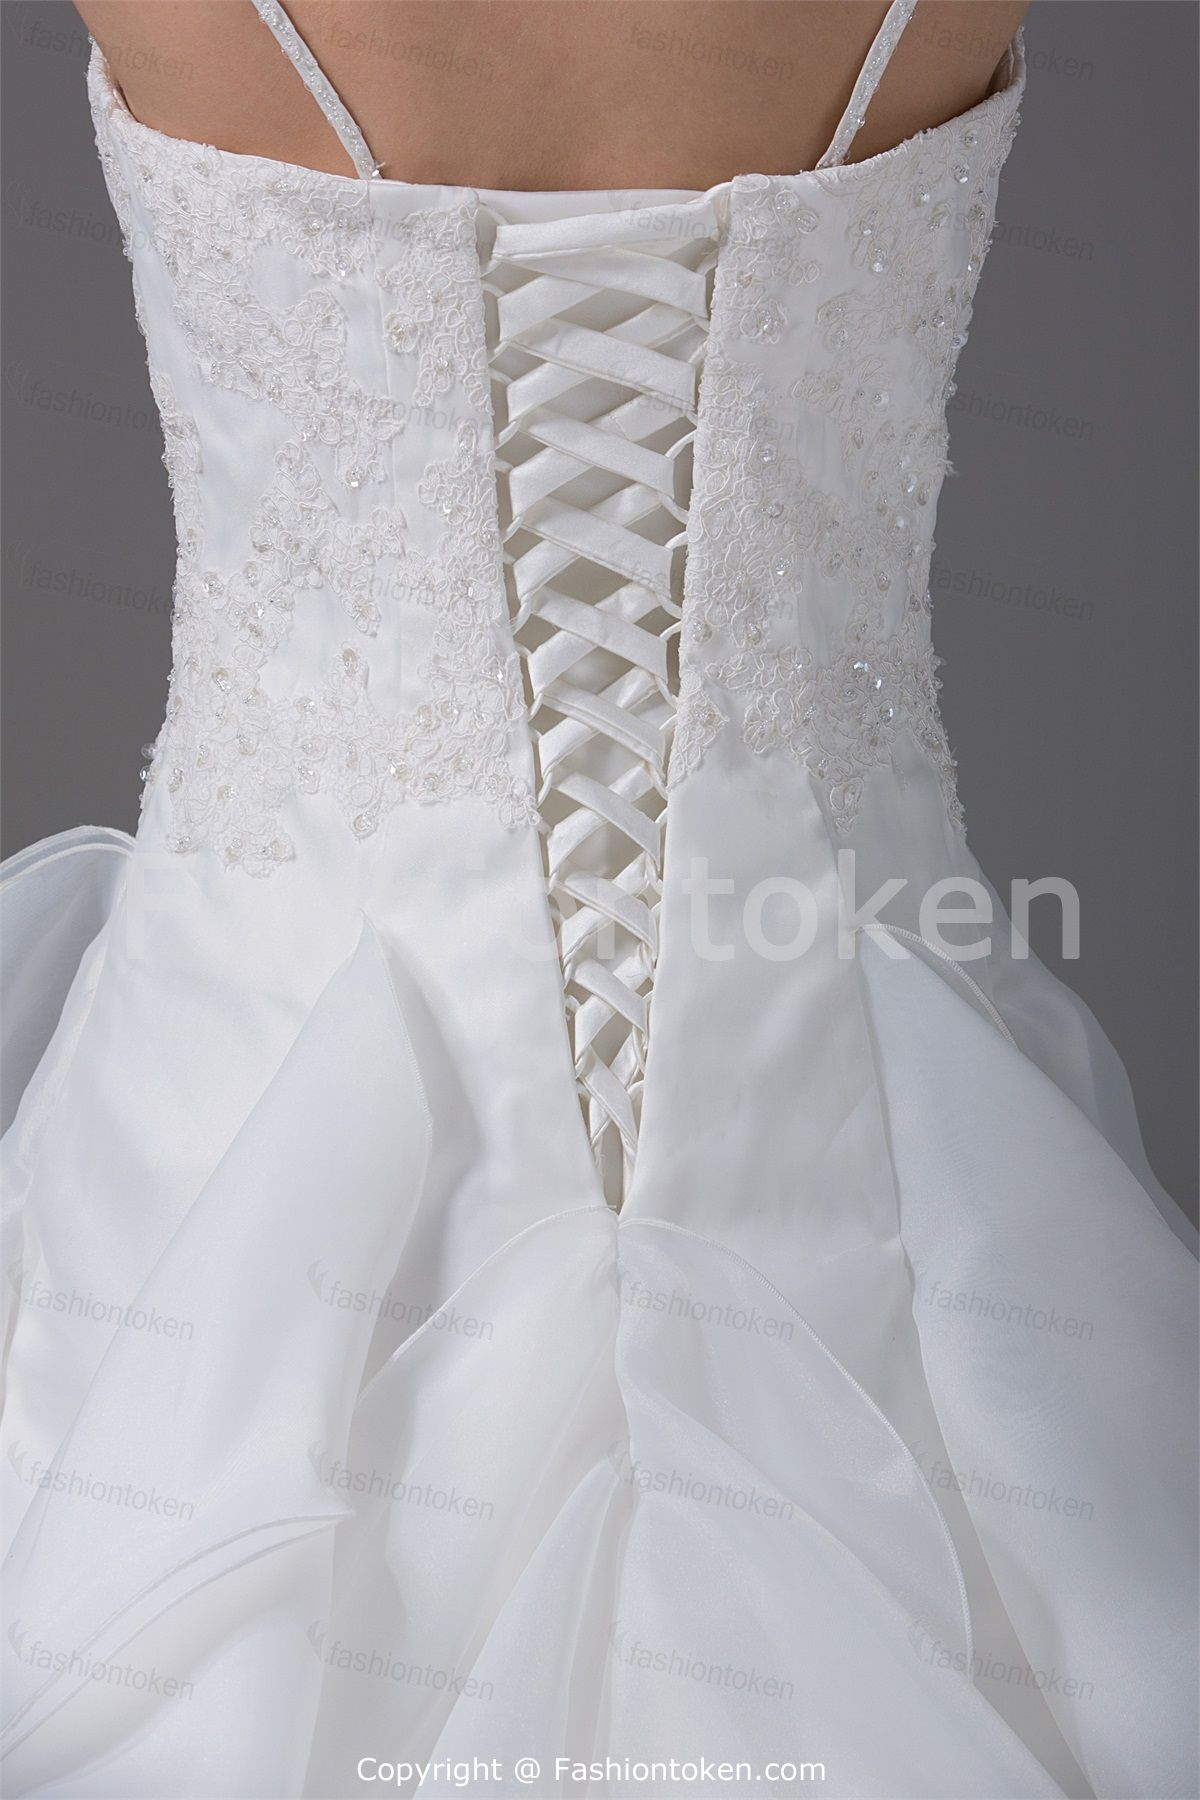 Corsetback Wedding Dress I just want it open to see skin